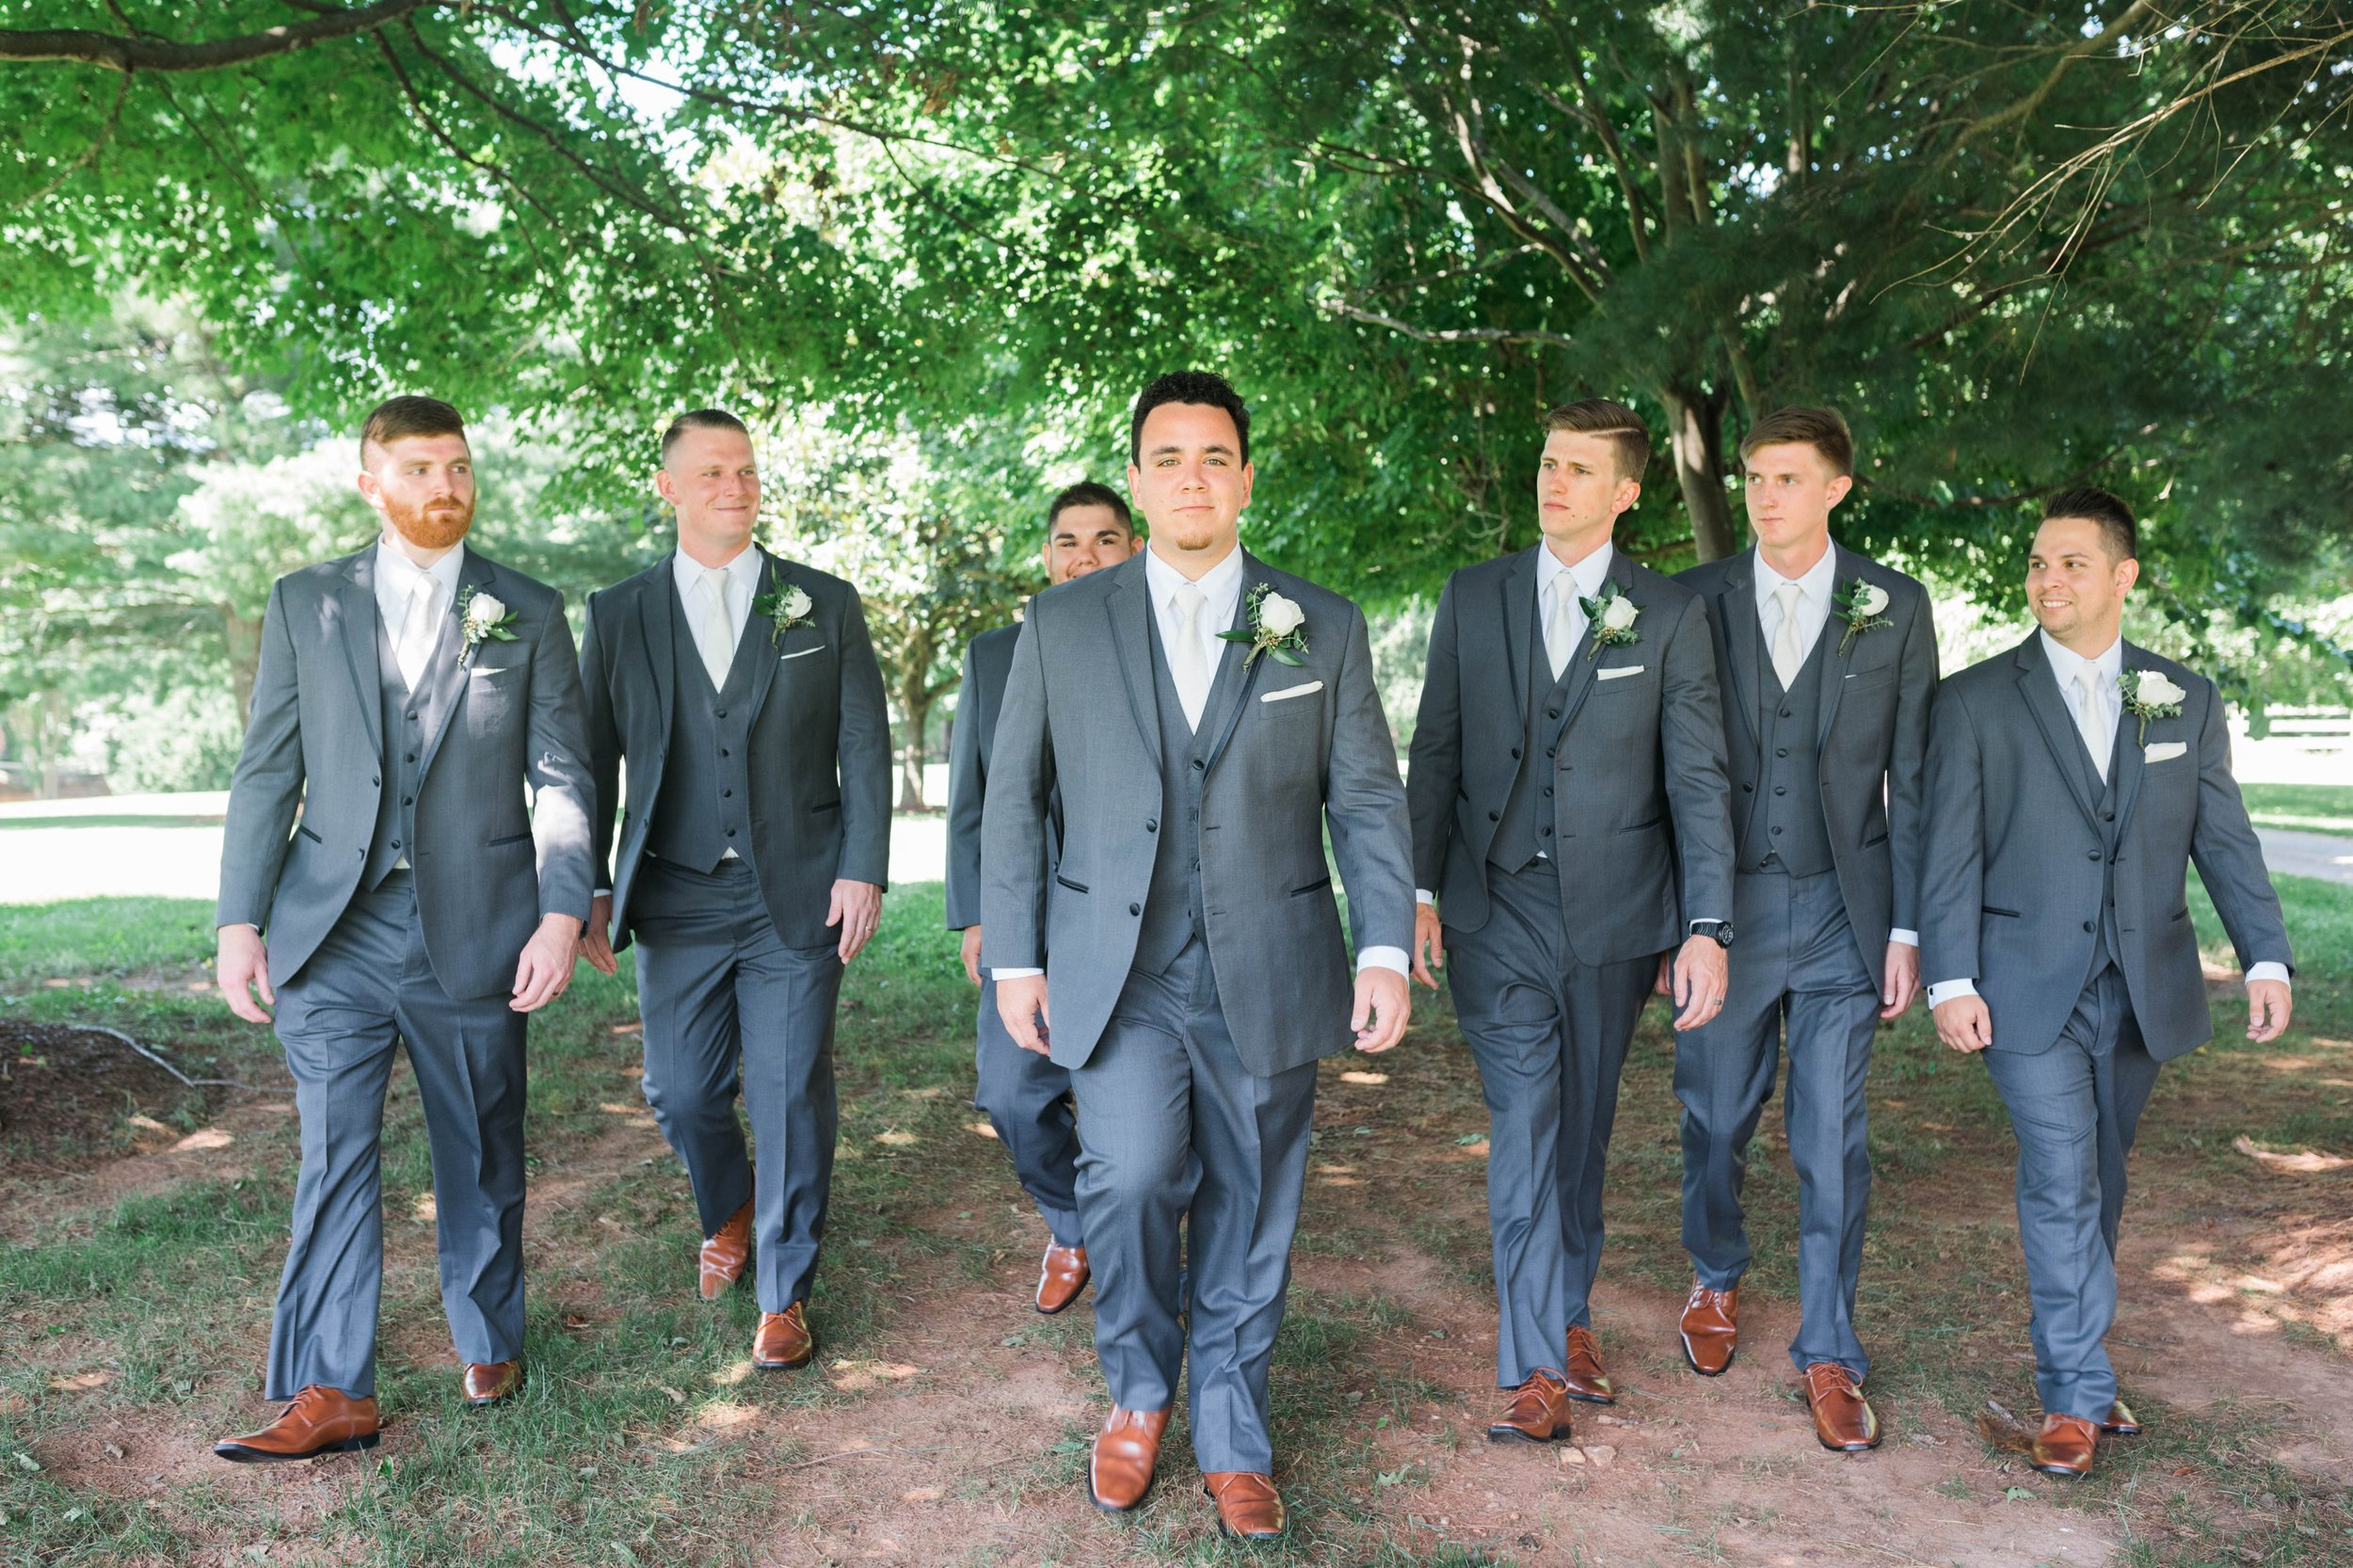 westmanorestate_entwinedevents_lynchburgweddingphotographer_Virginiaweddingphotographer_kateyam 39.jpg